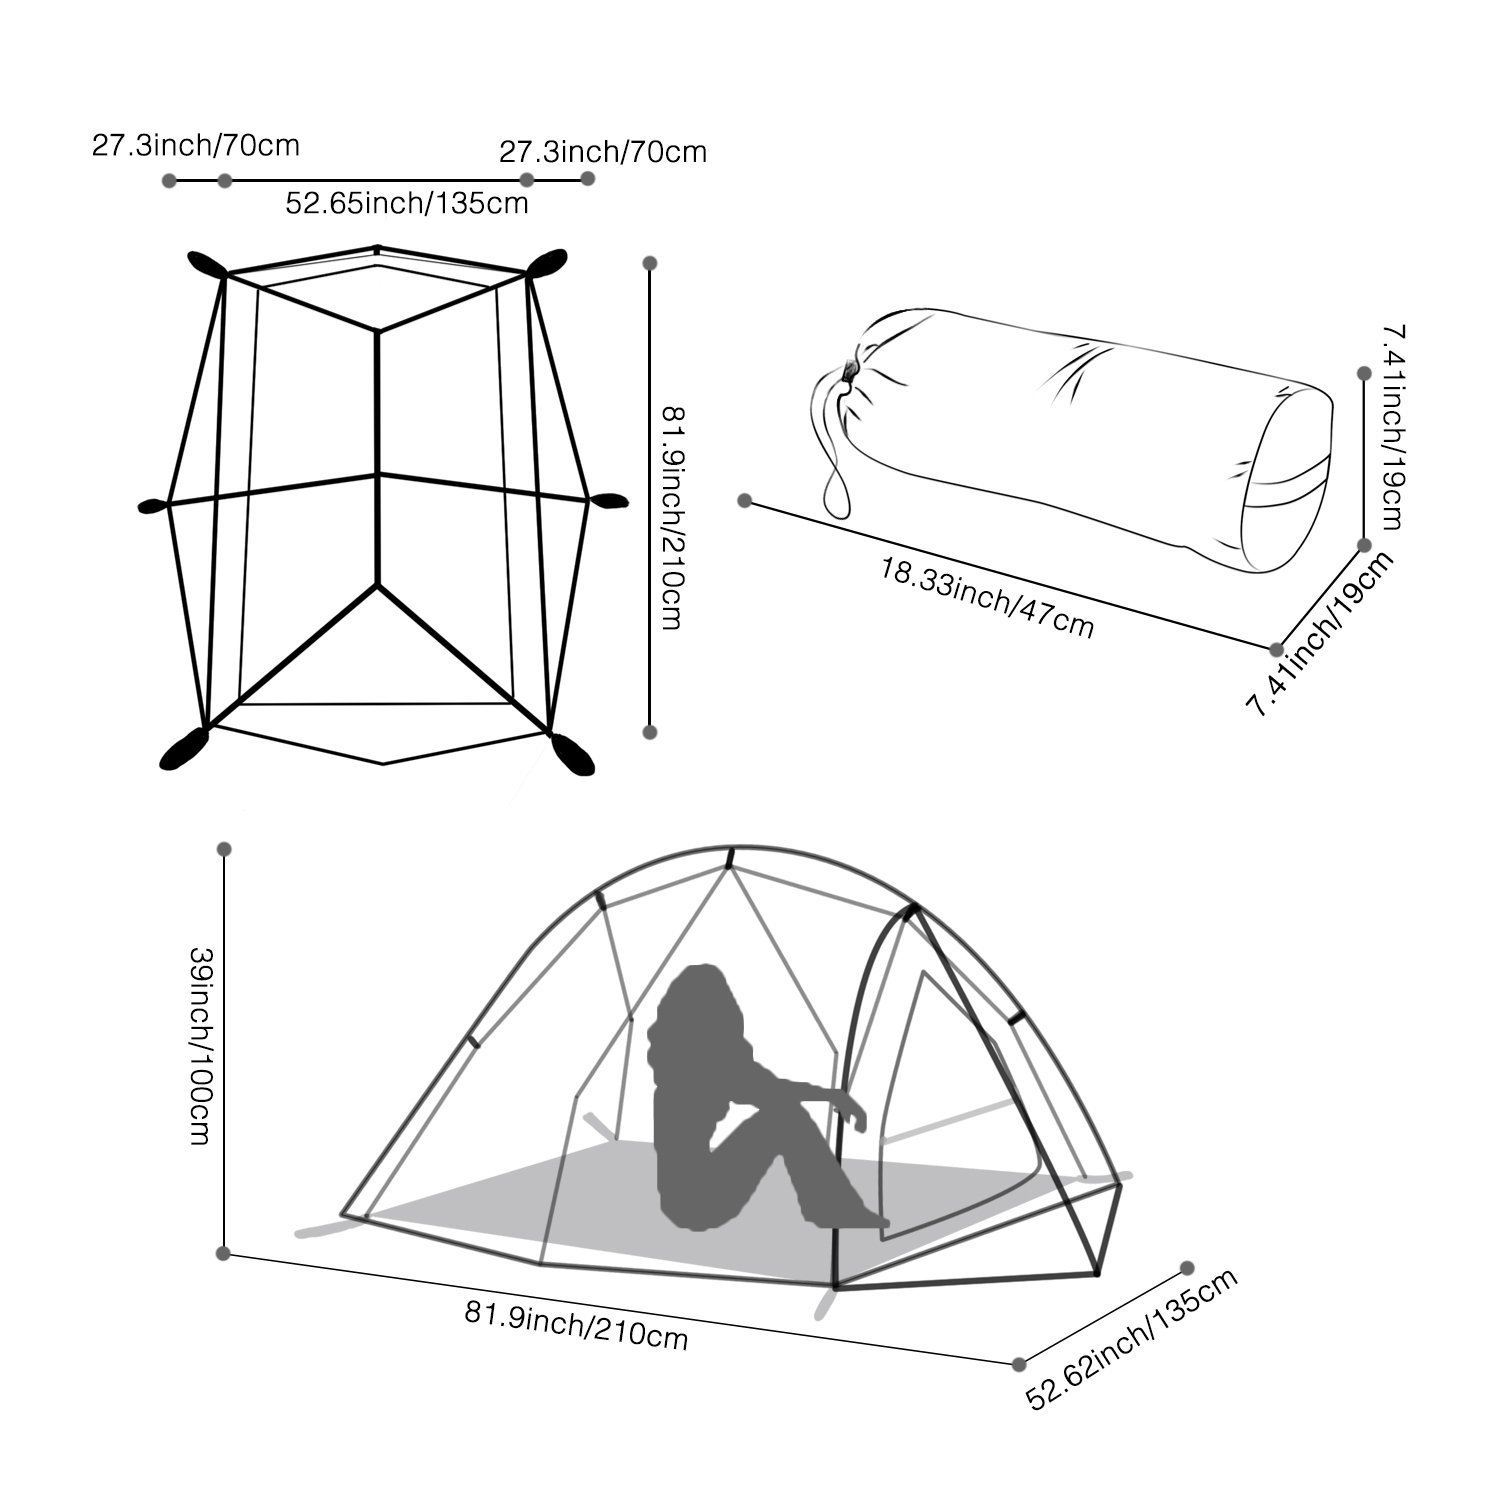 1500x1500 Wolfwise 2 Person Backpacking Tent